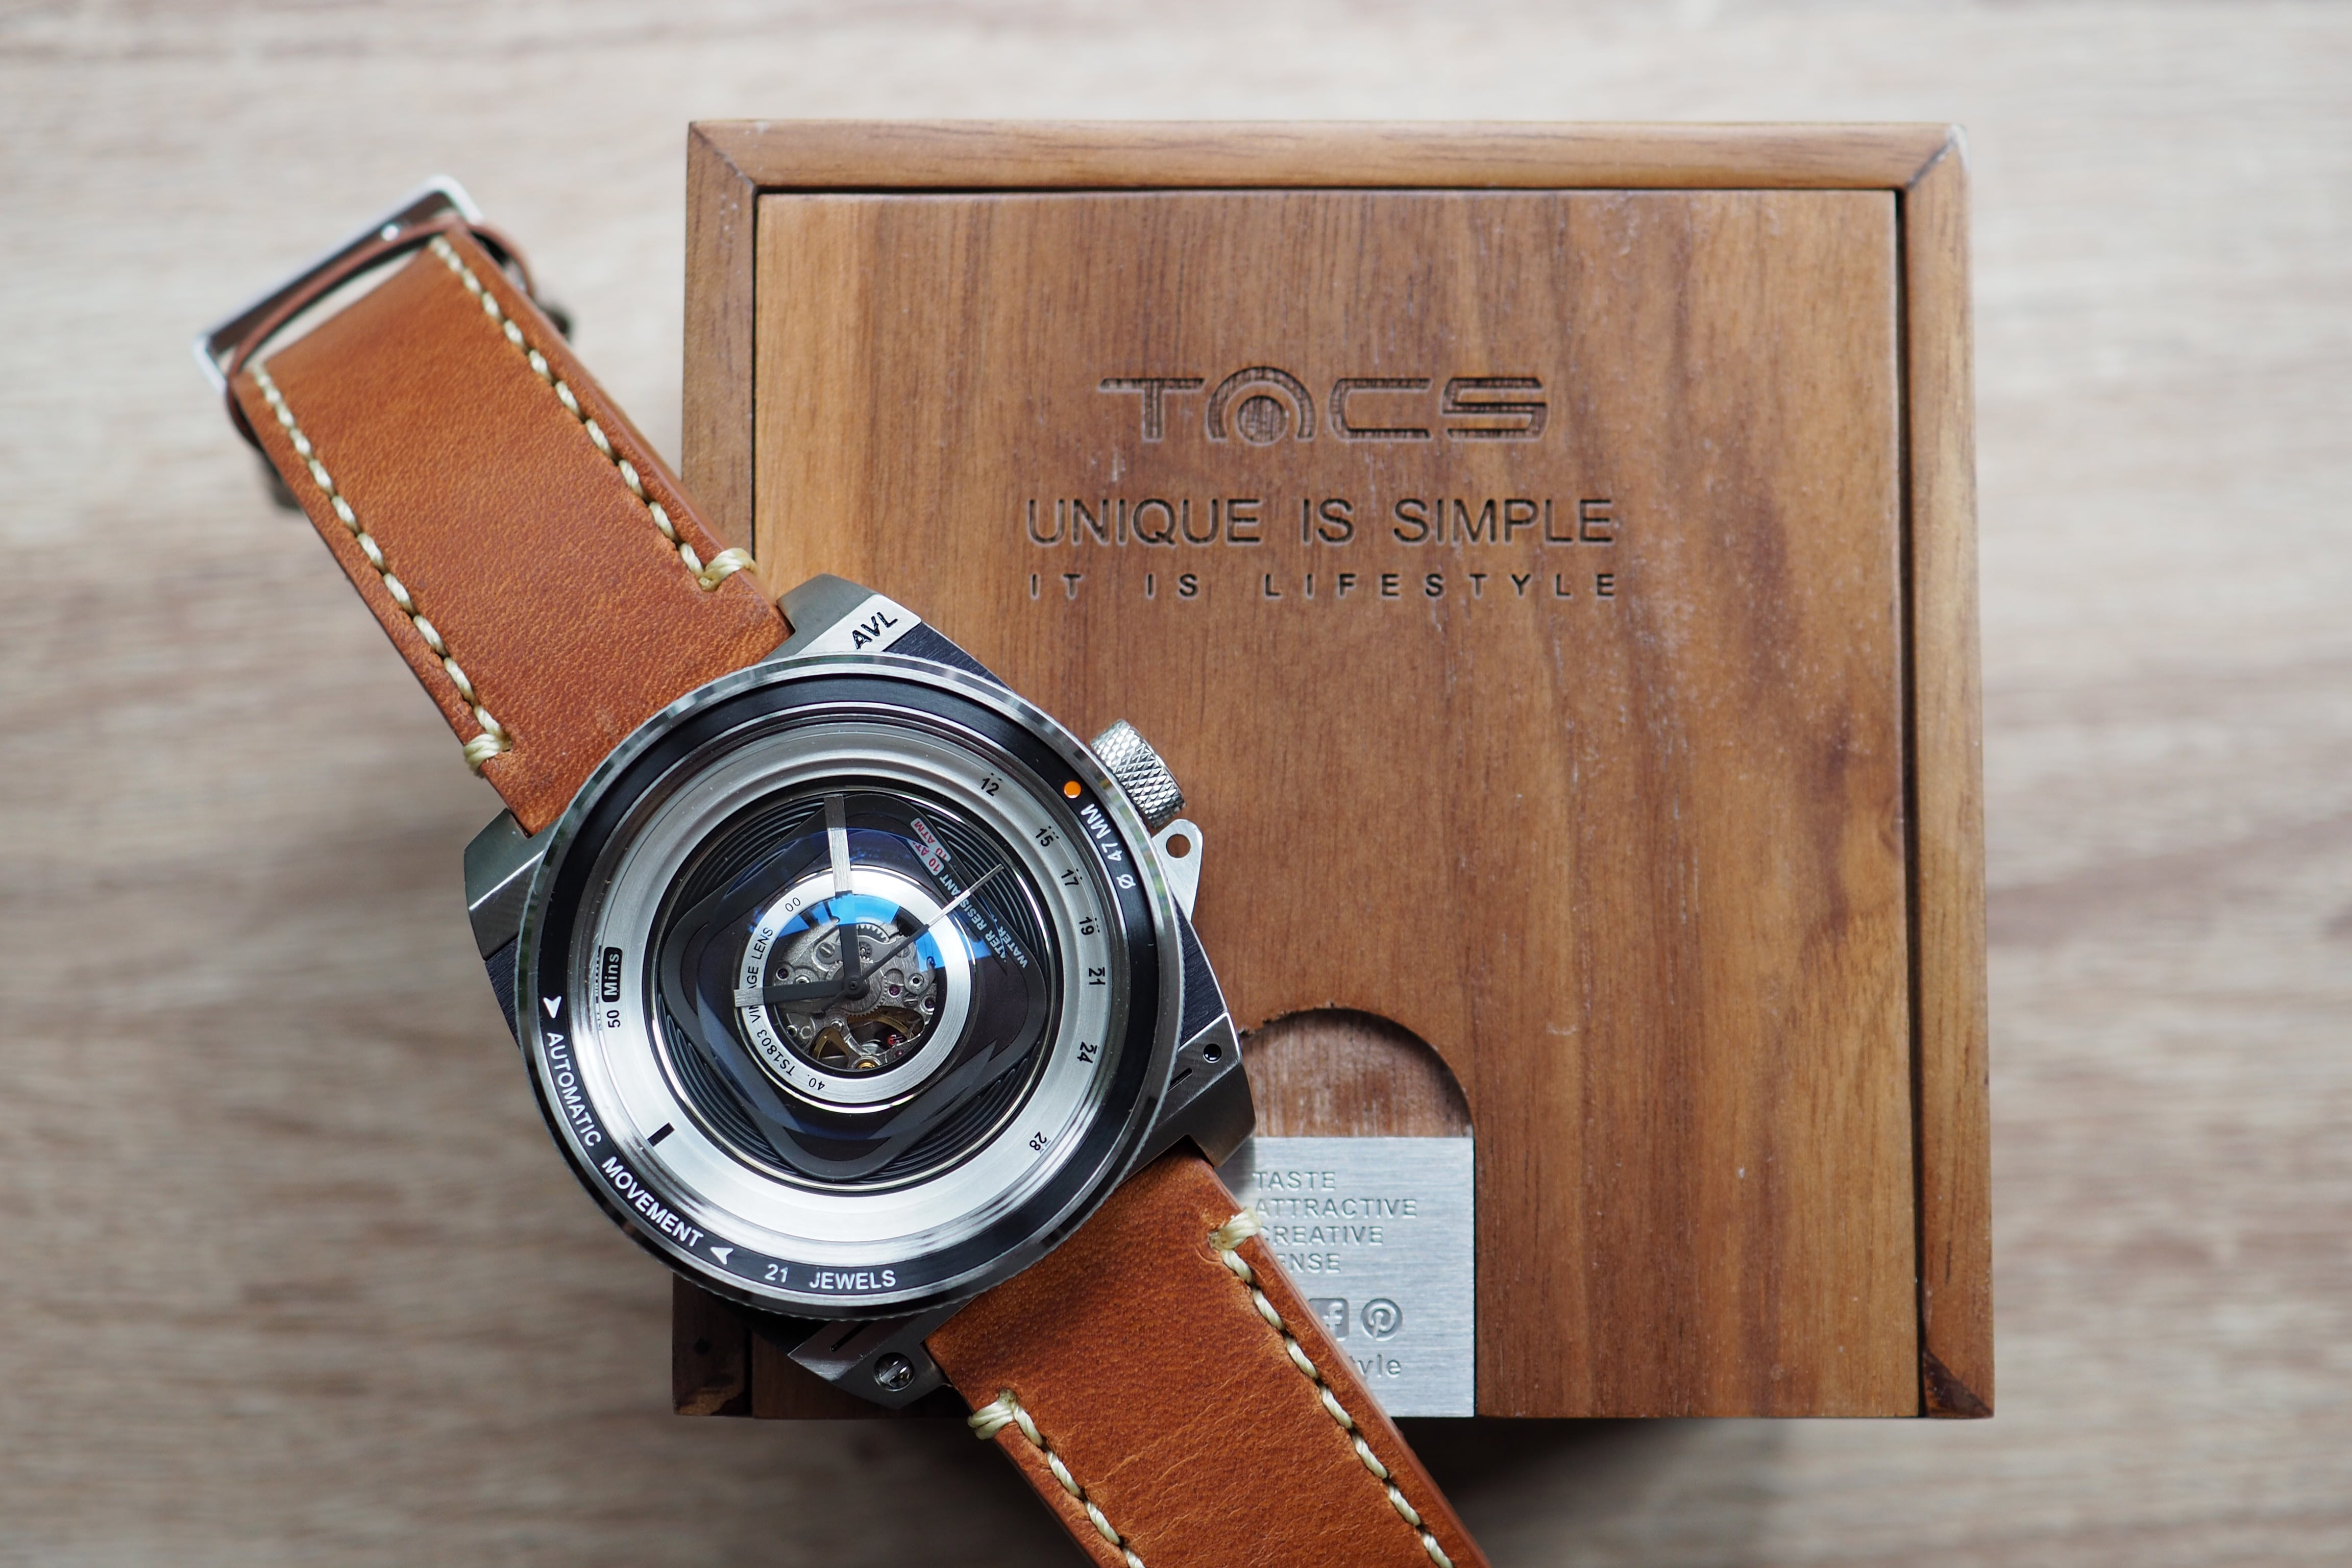 tacs automatic vintage lens ii watch review watchreviewblog